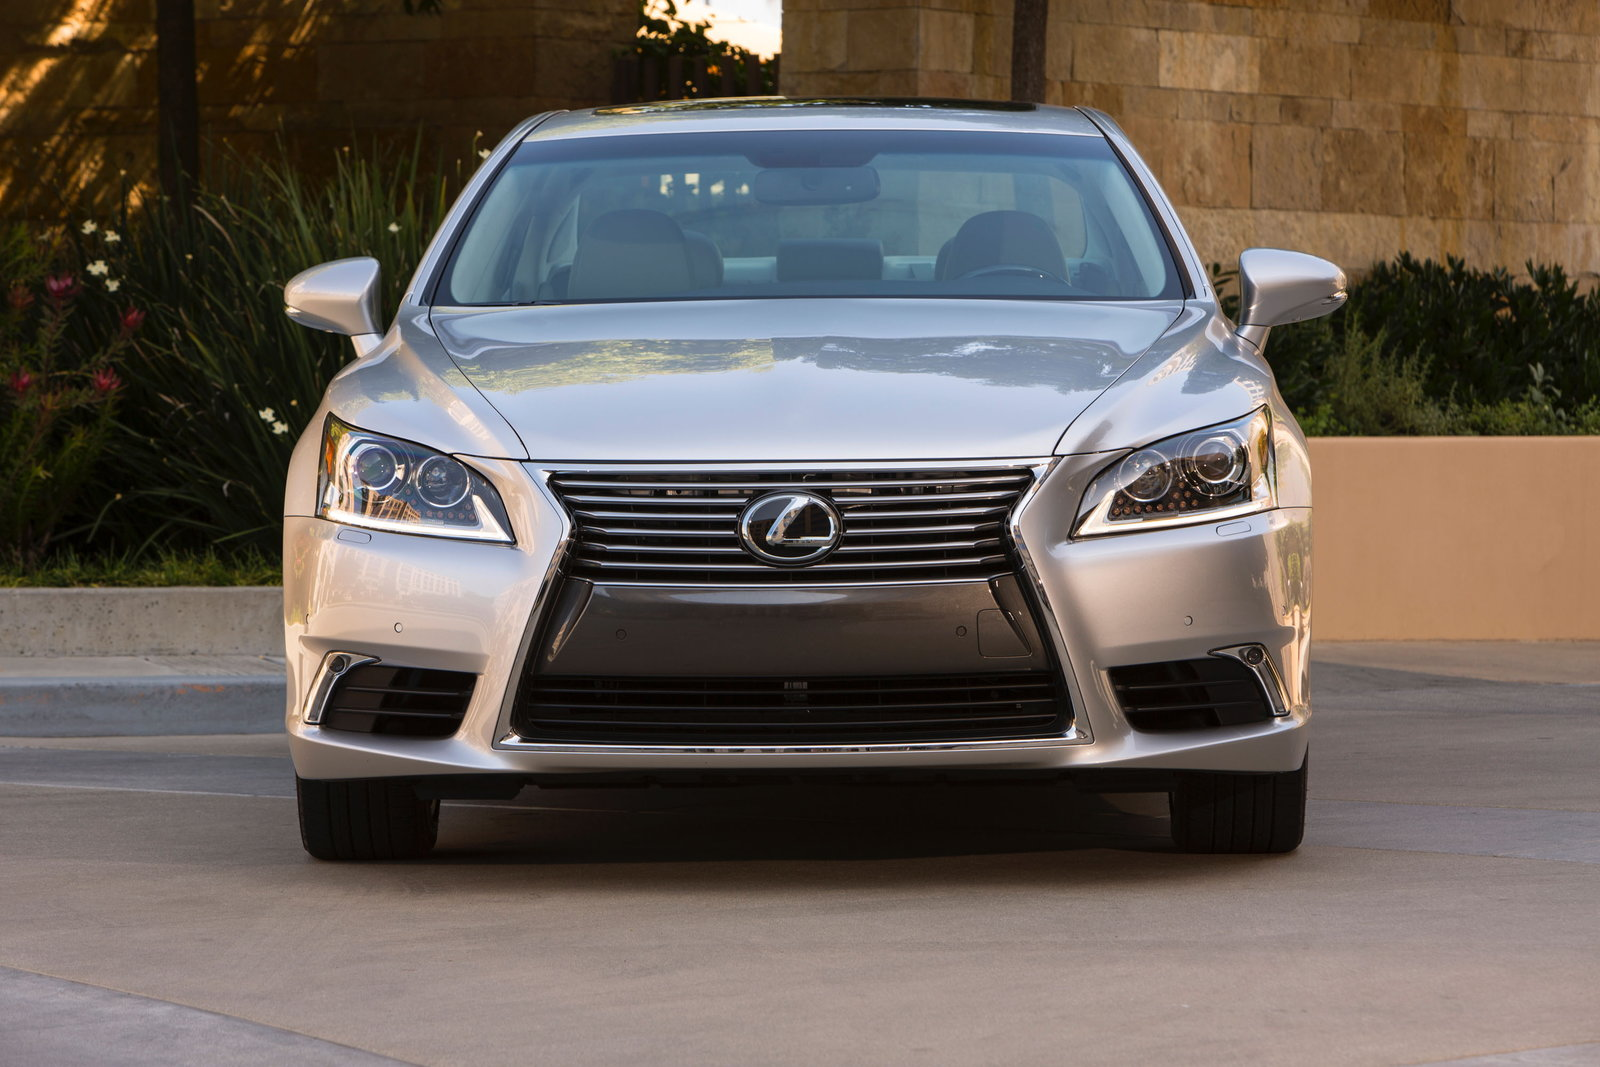 2016 lexus ls 460 review - carsdirect